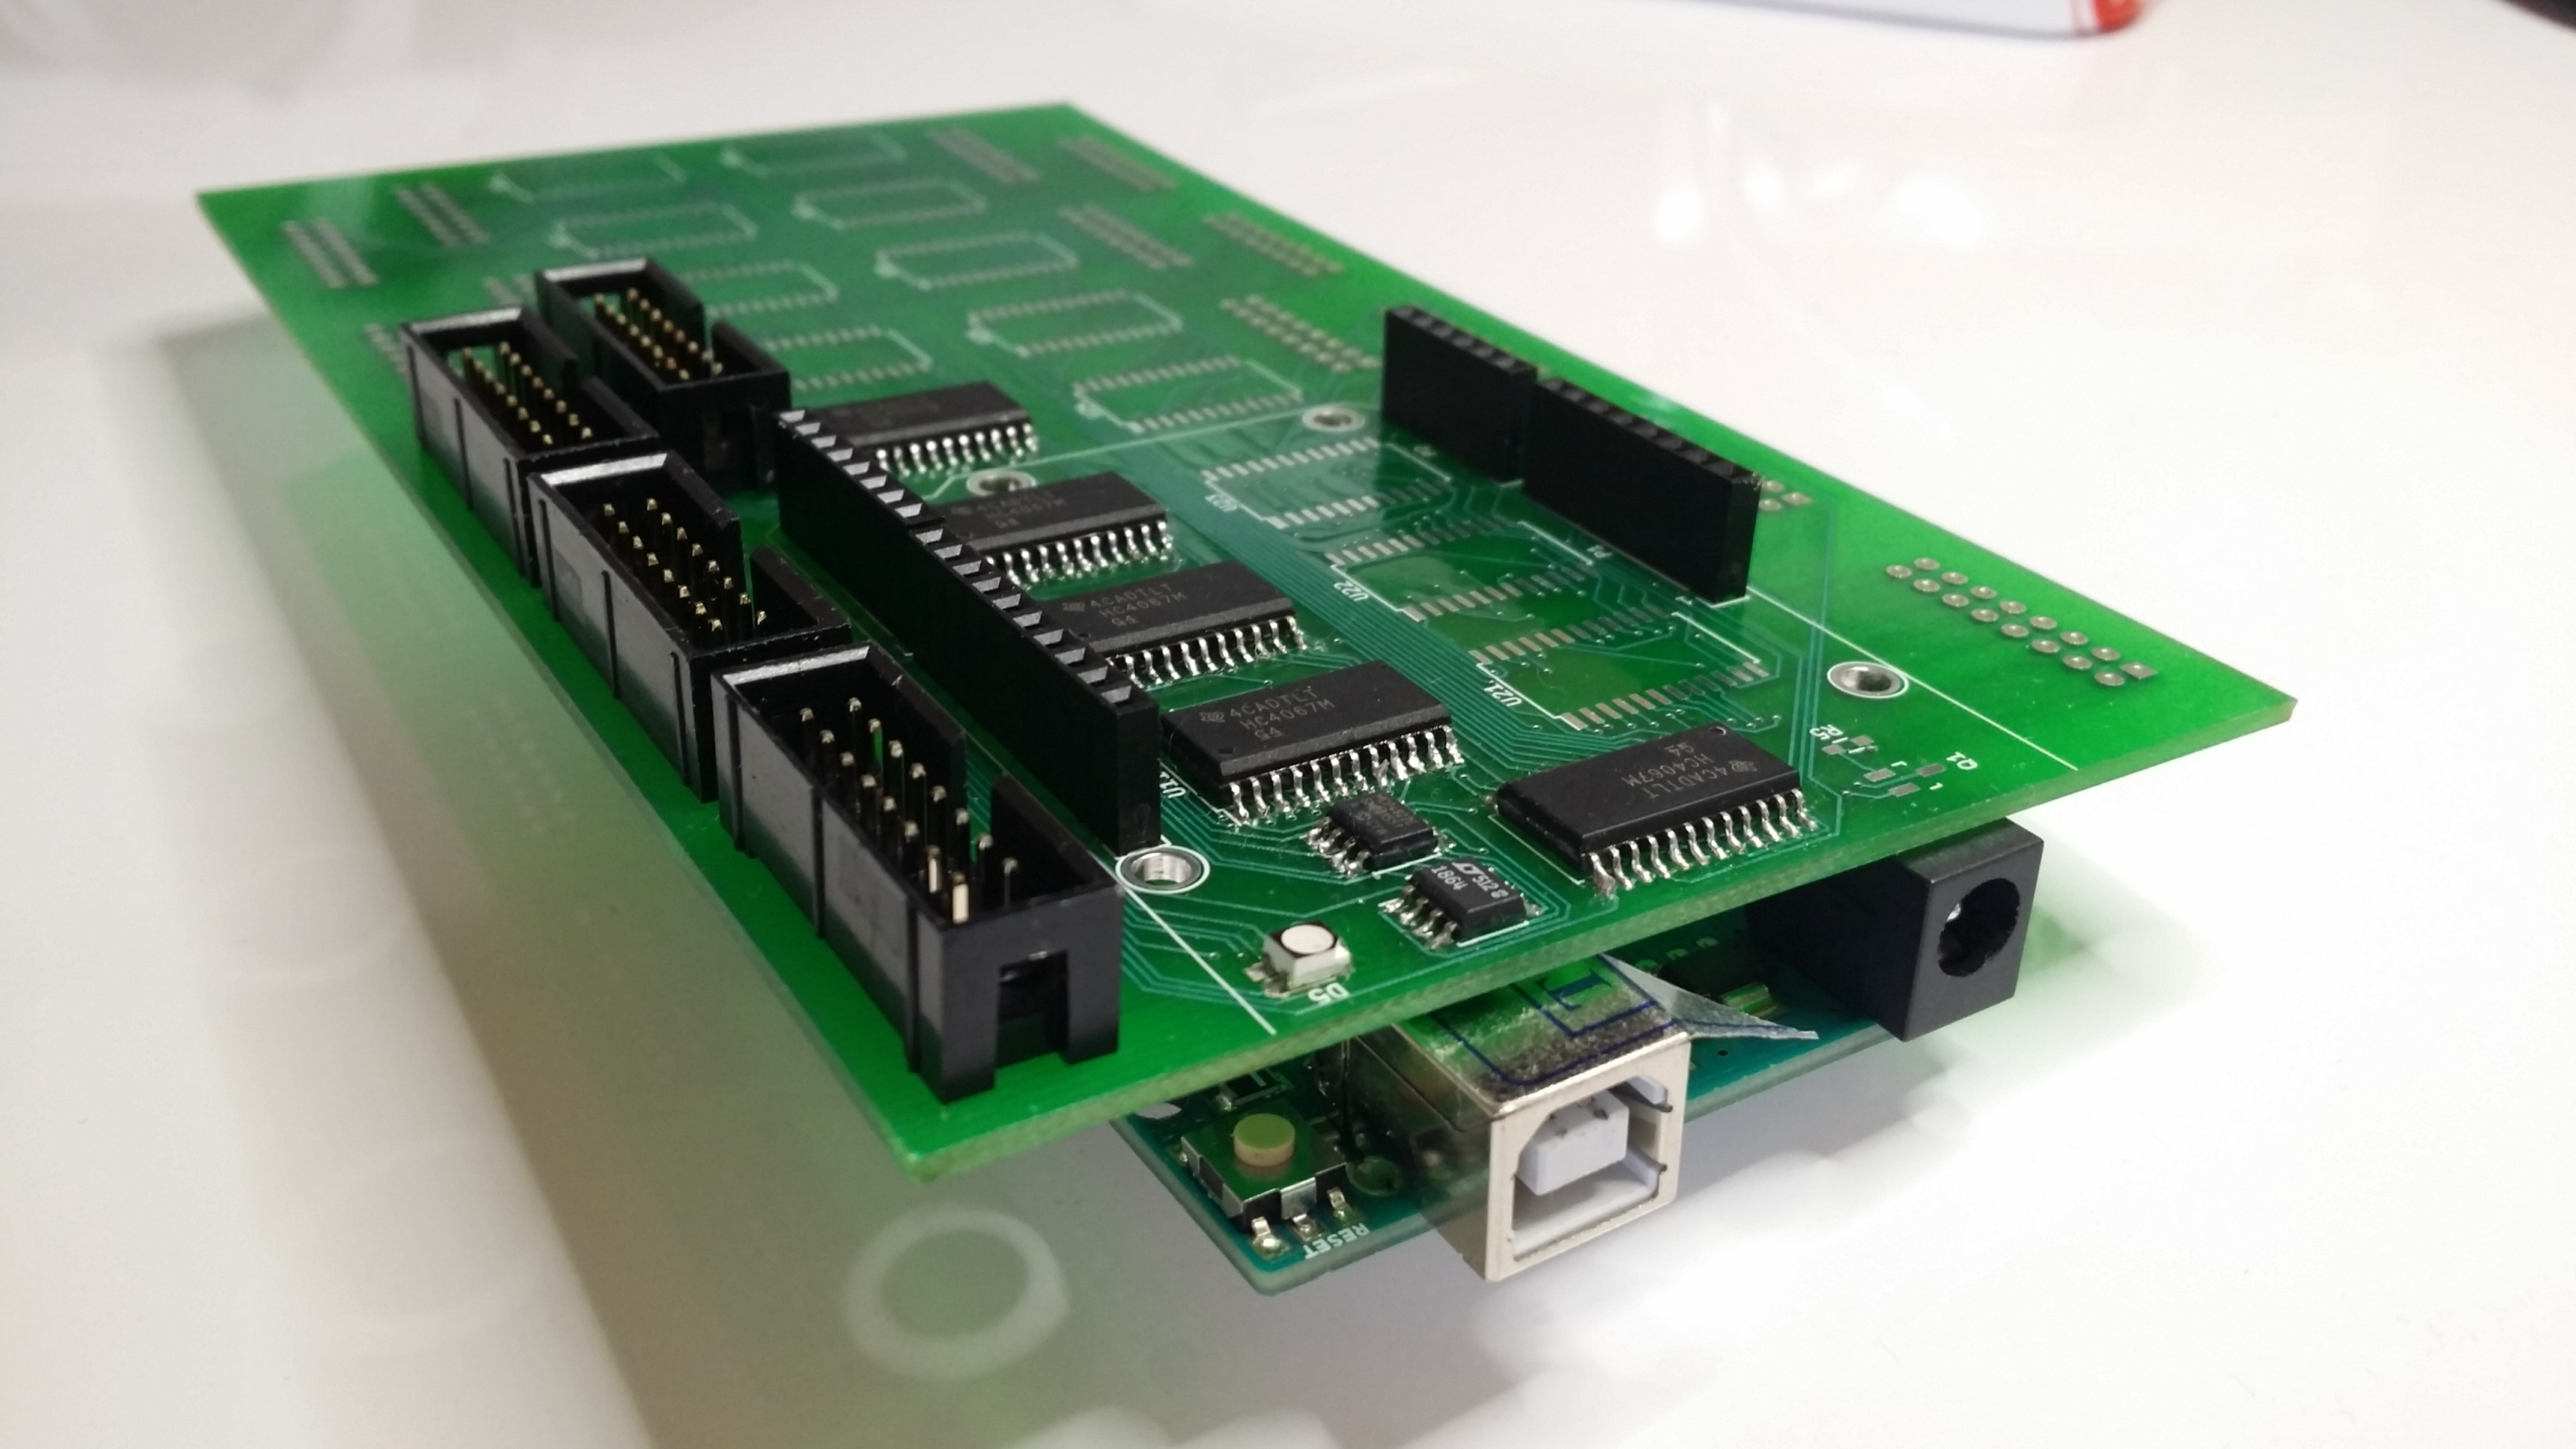 The Arduino Uno and its shield #2